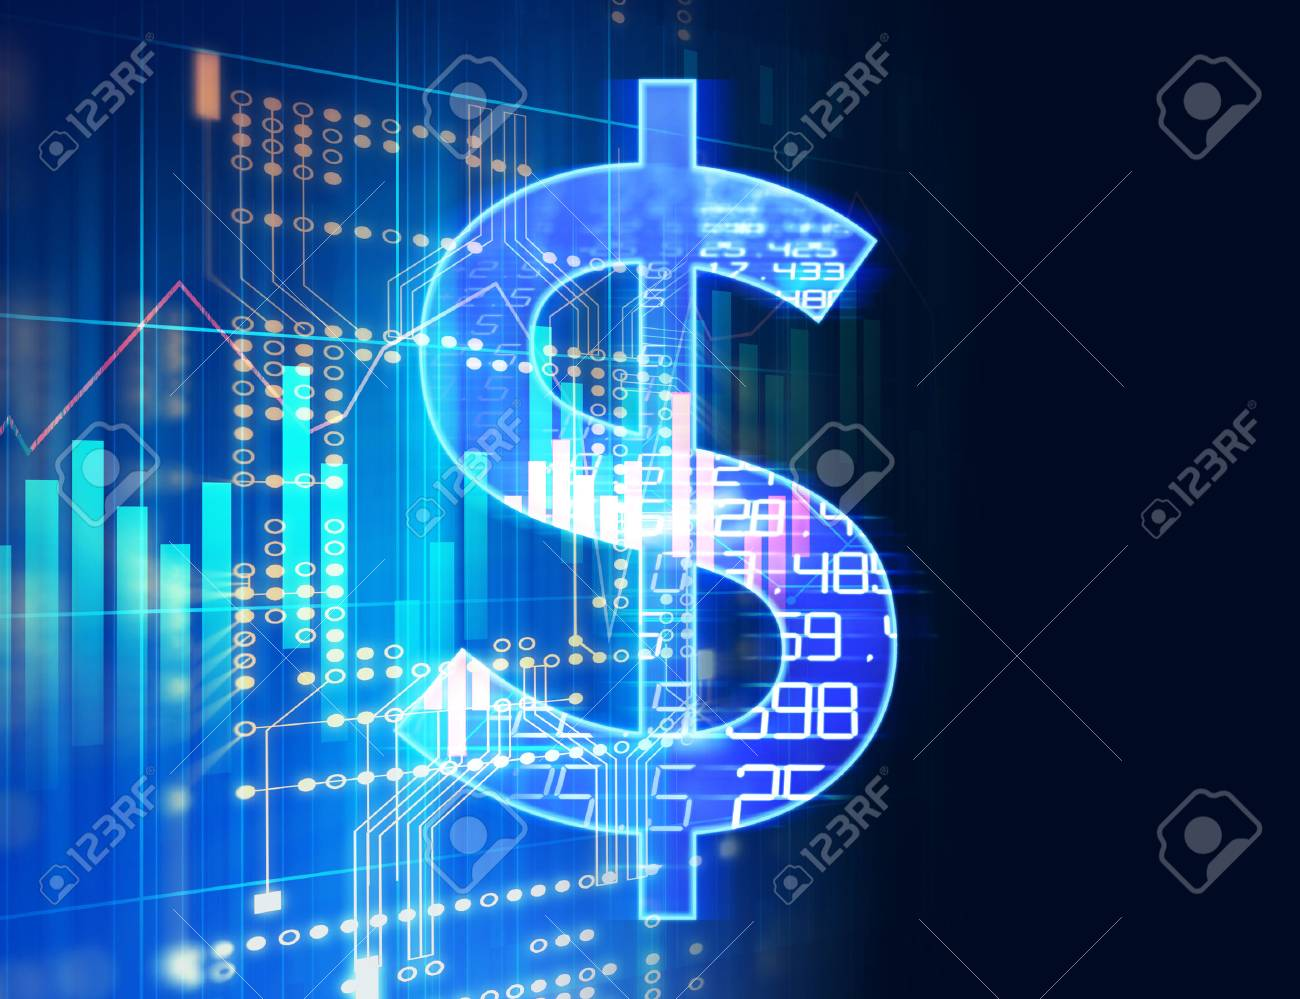 75396543-dollar-sign-on-abstract-financial-technology-background-represent-blockchain-and-fintech-investment-